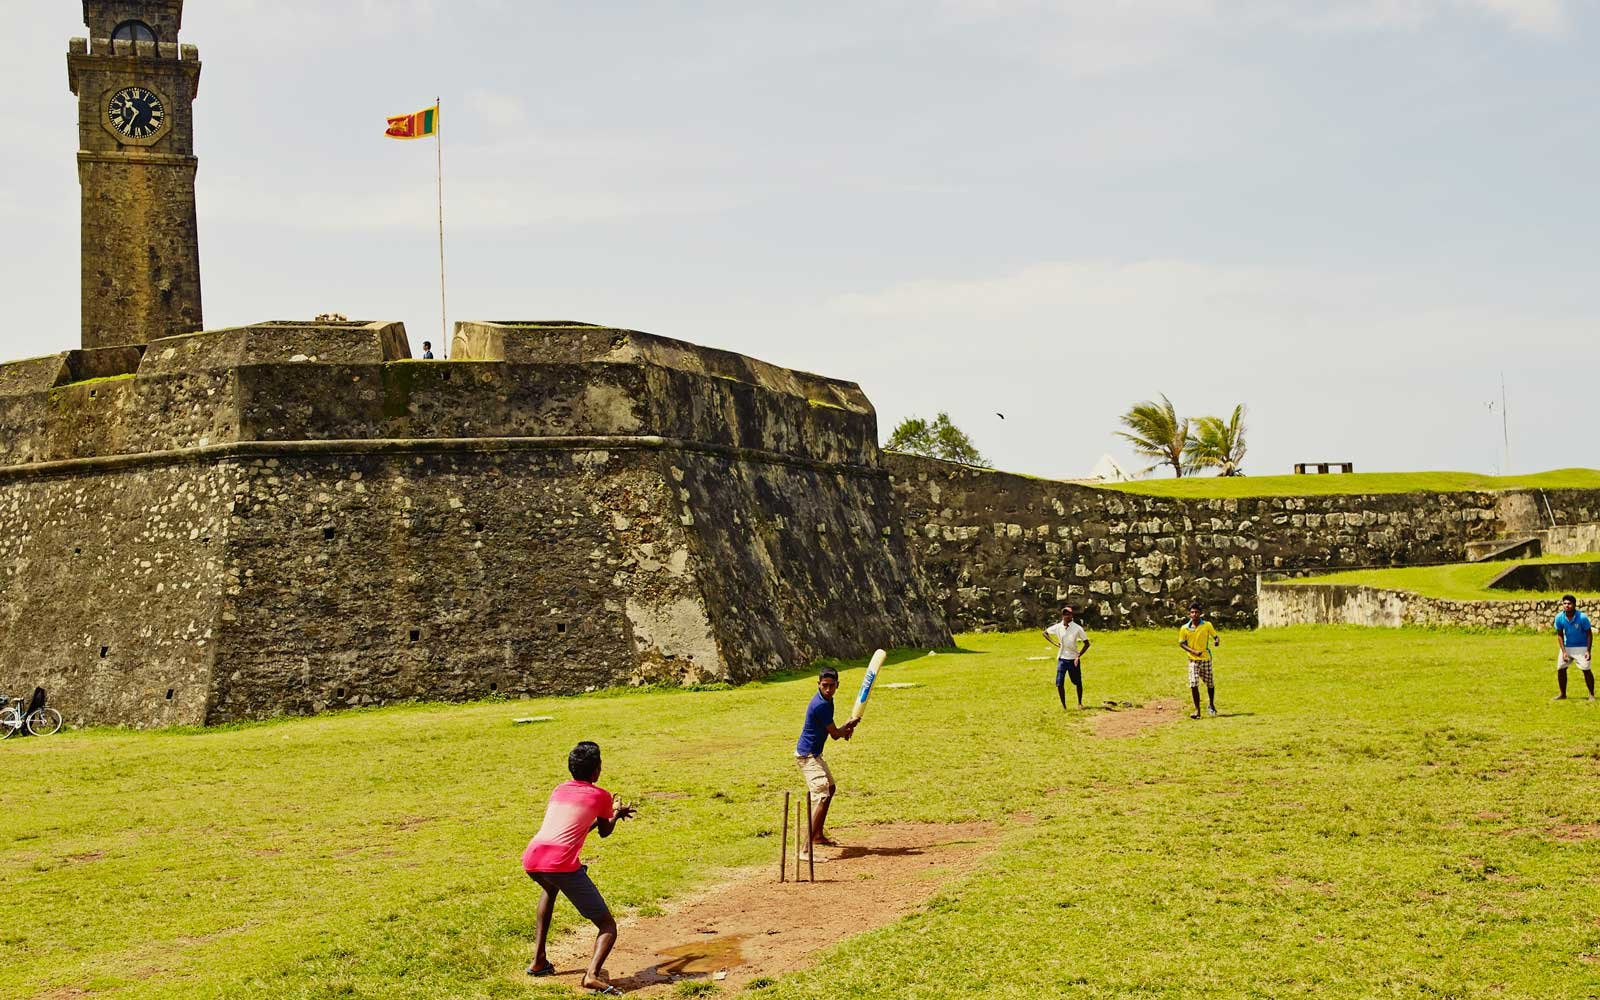 Boys play cricket at Galle Fort, in southern Sri Lanka